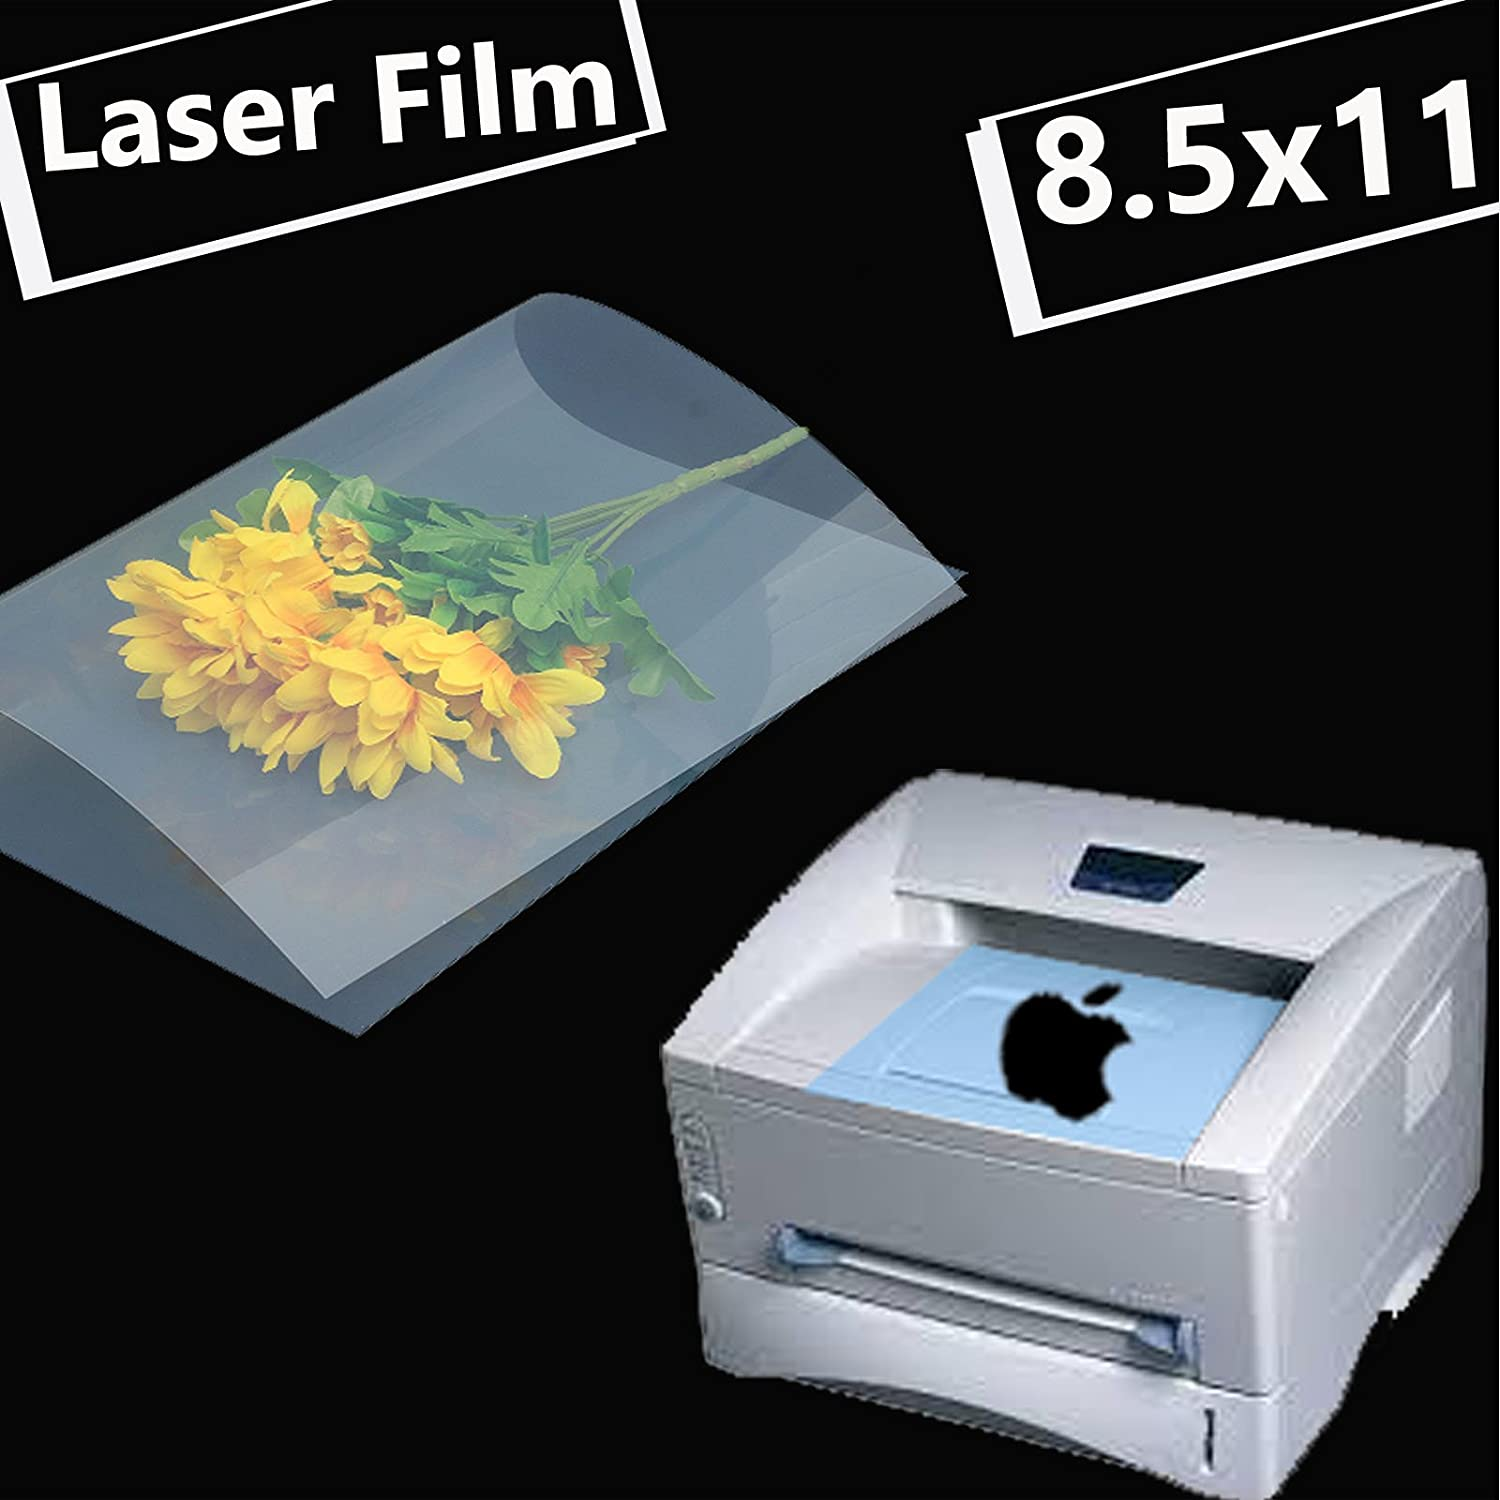 50 Sheets,8.5x11,Laser Printer Printing Transparency Film for Silk Screen Printing for Laser HP, Canon, Brother, Oki, EPSON Printers Tiger-Hoo(Factory Direct) 4336976476